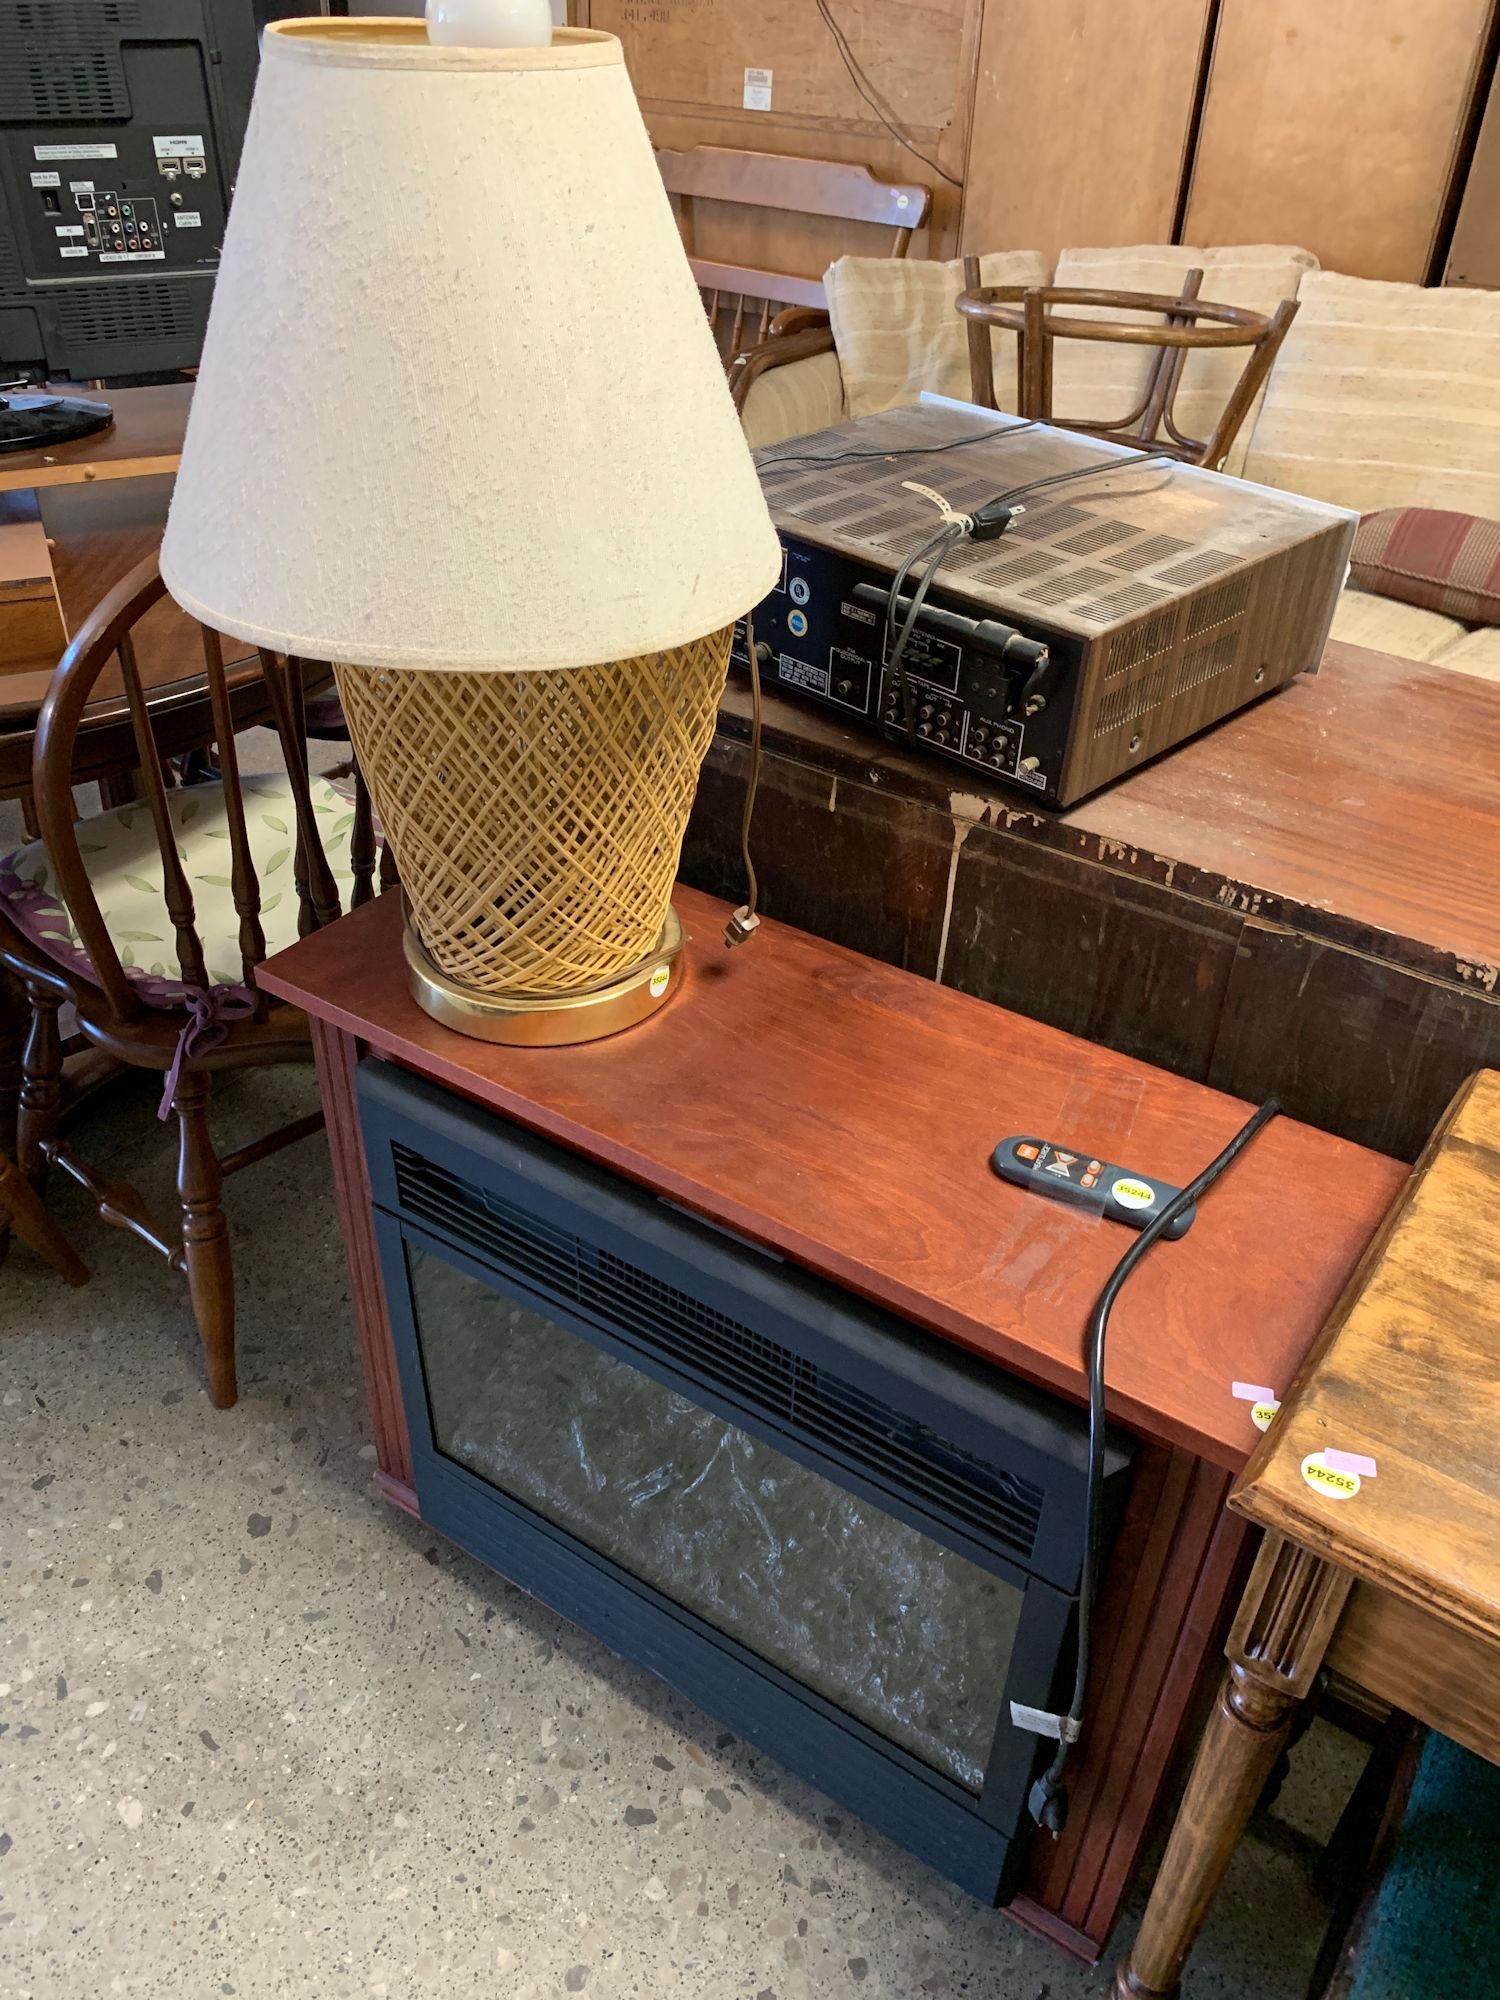 ELECTRIC FIREPLACE AND LAMP